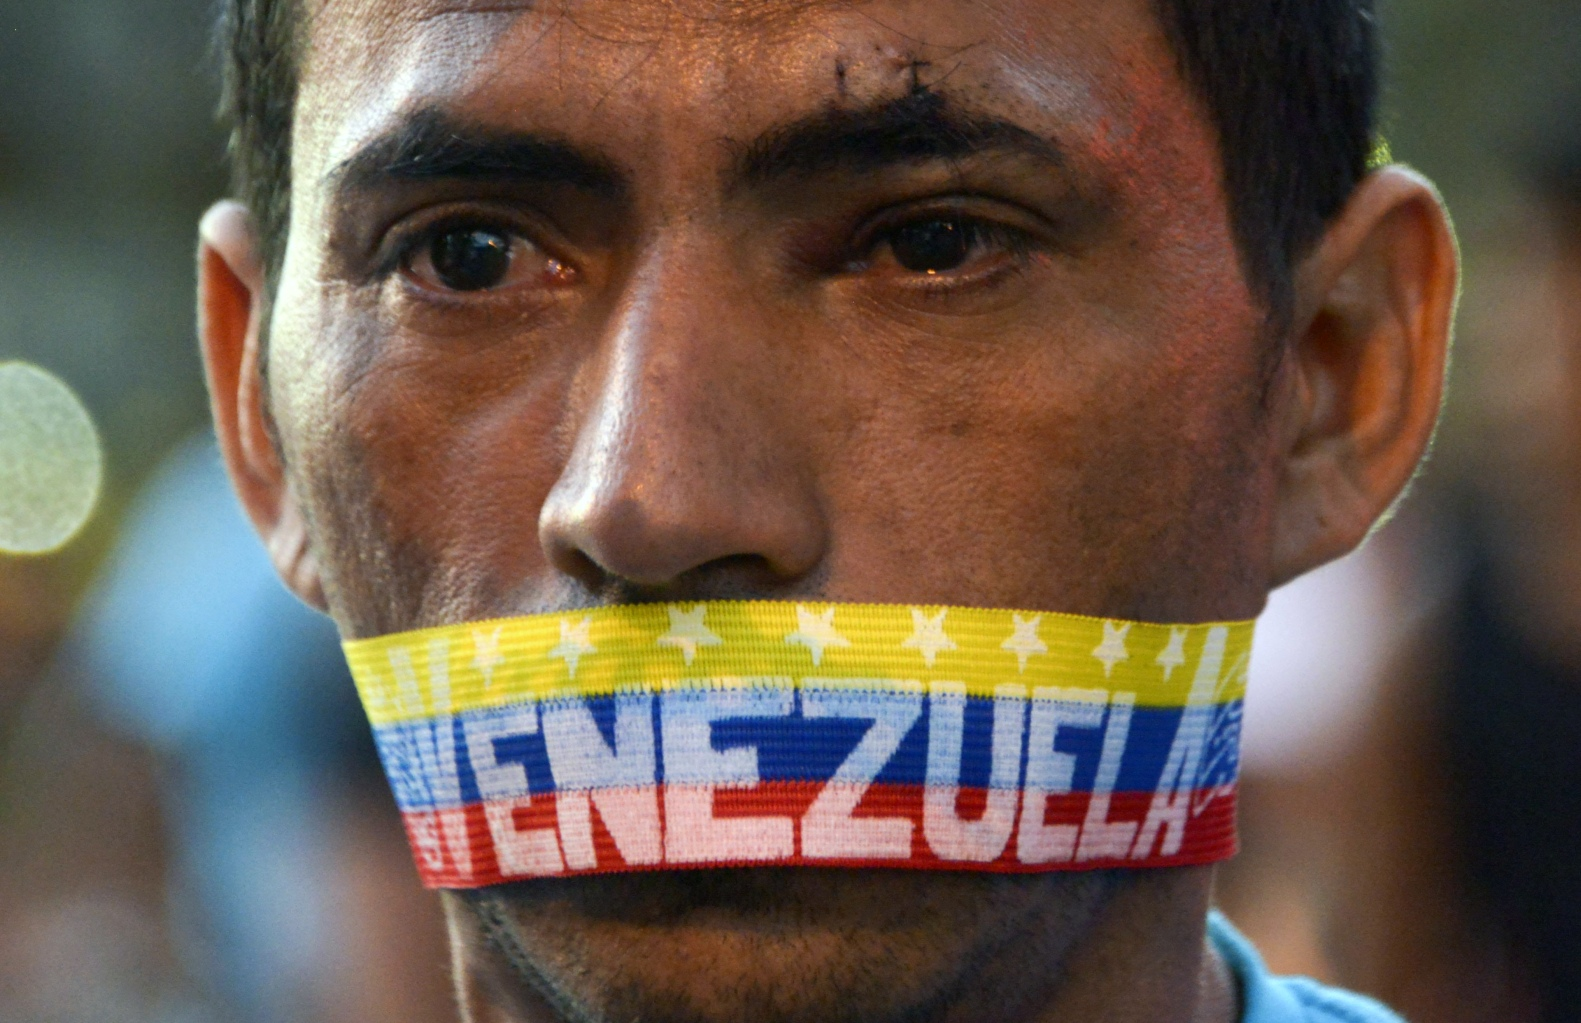 RAUL ARBOLEDA/AFP/Getty Images